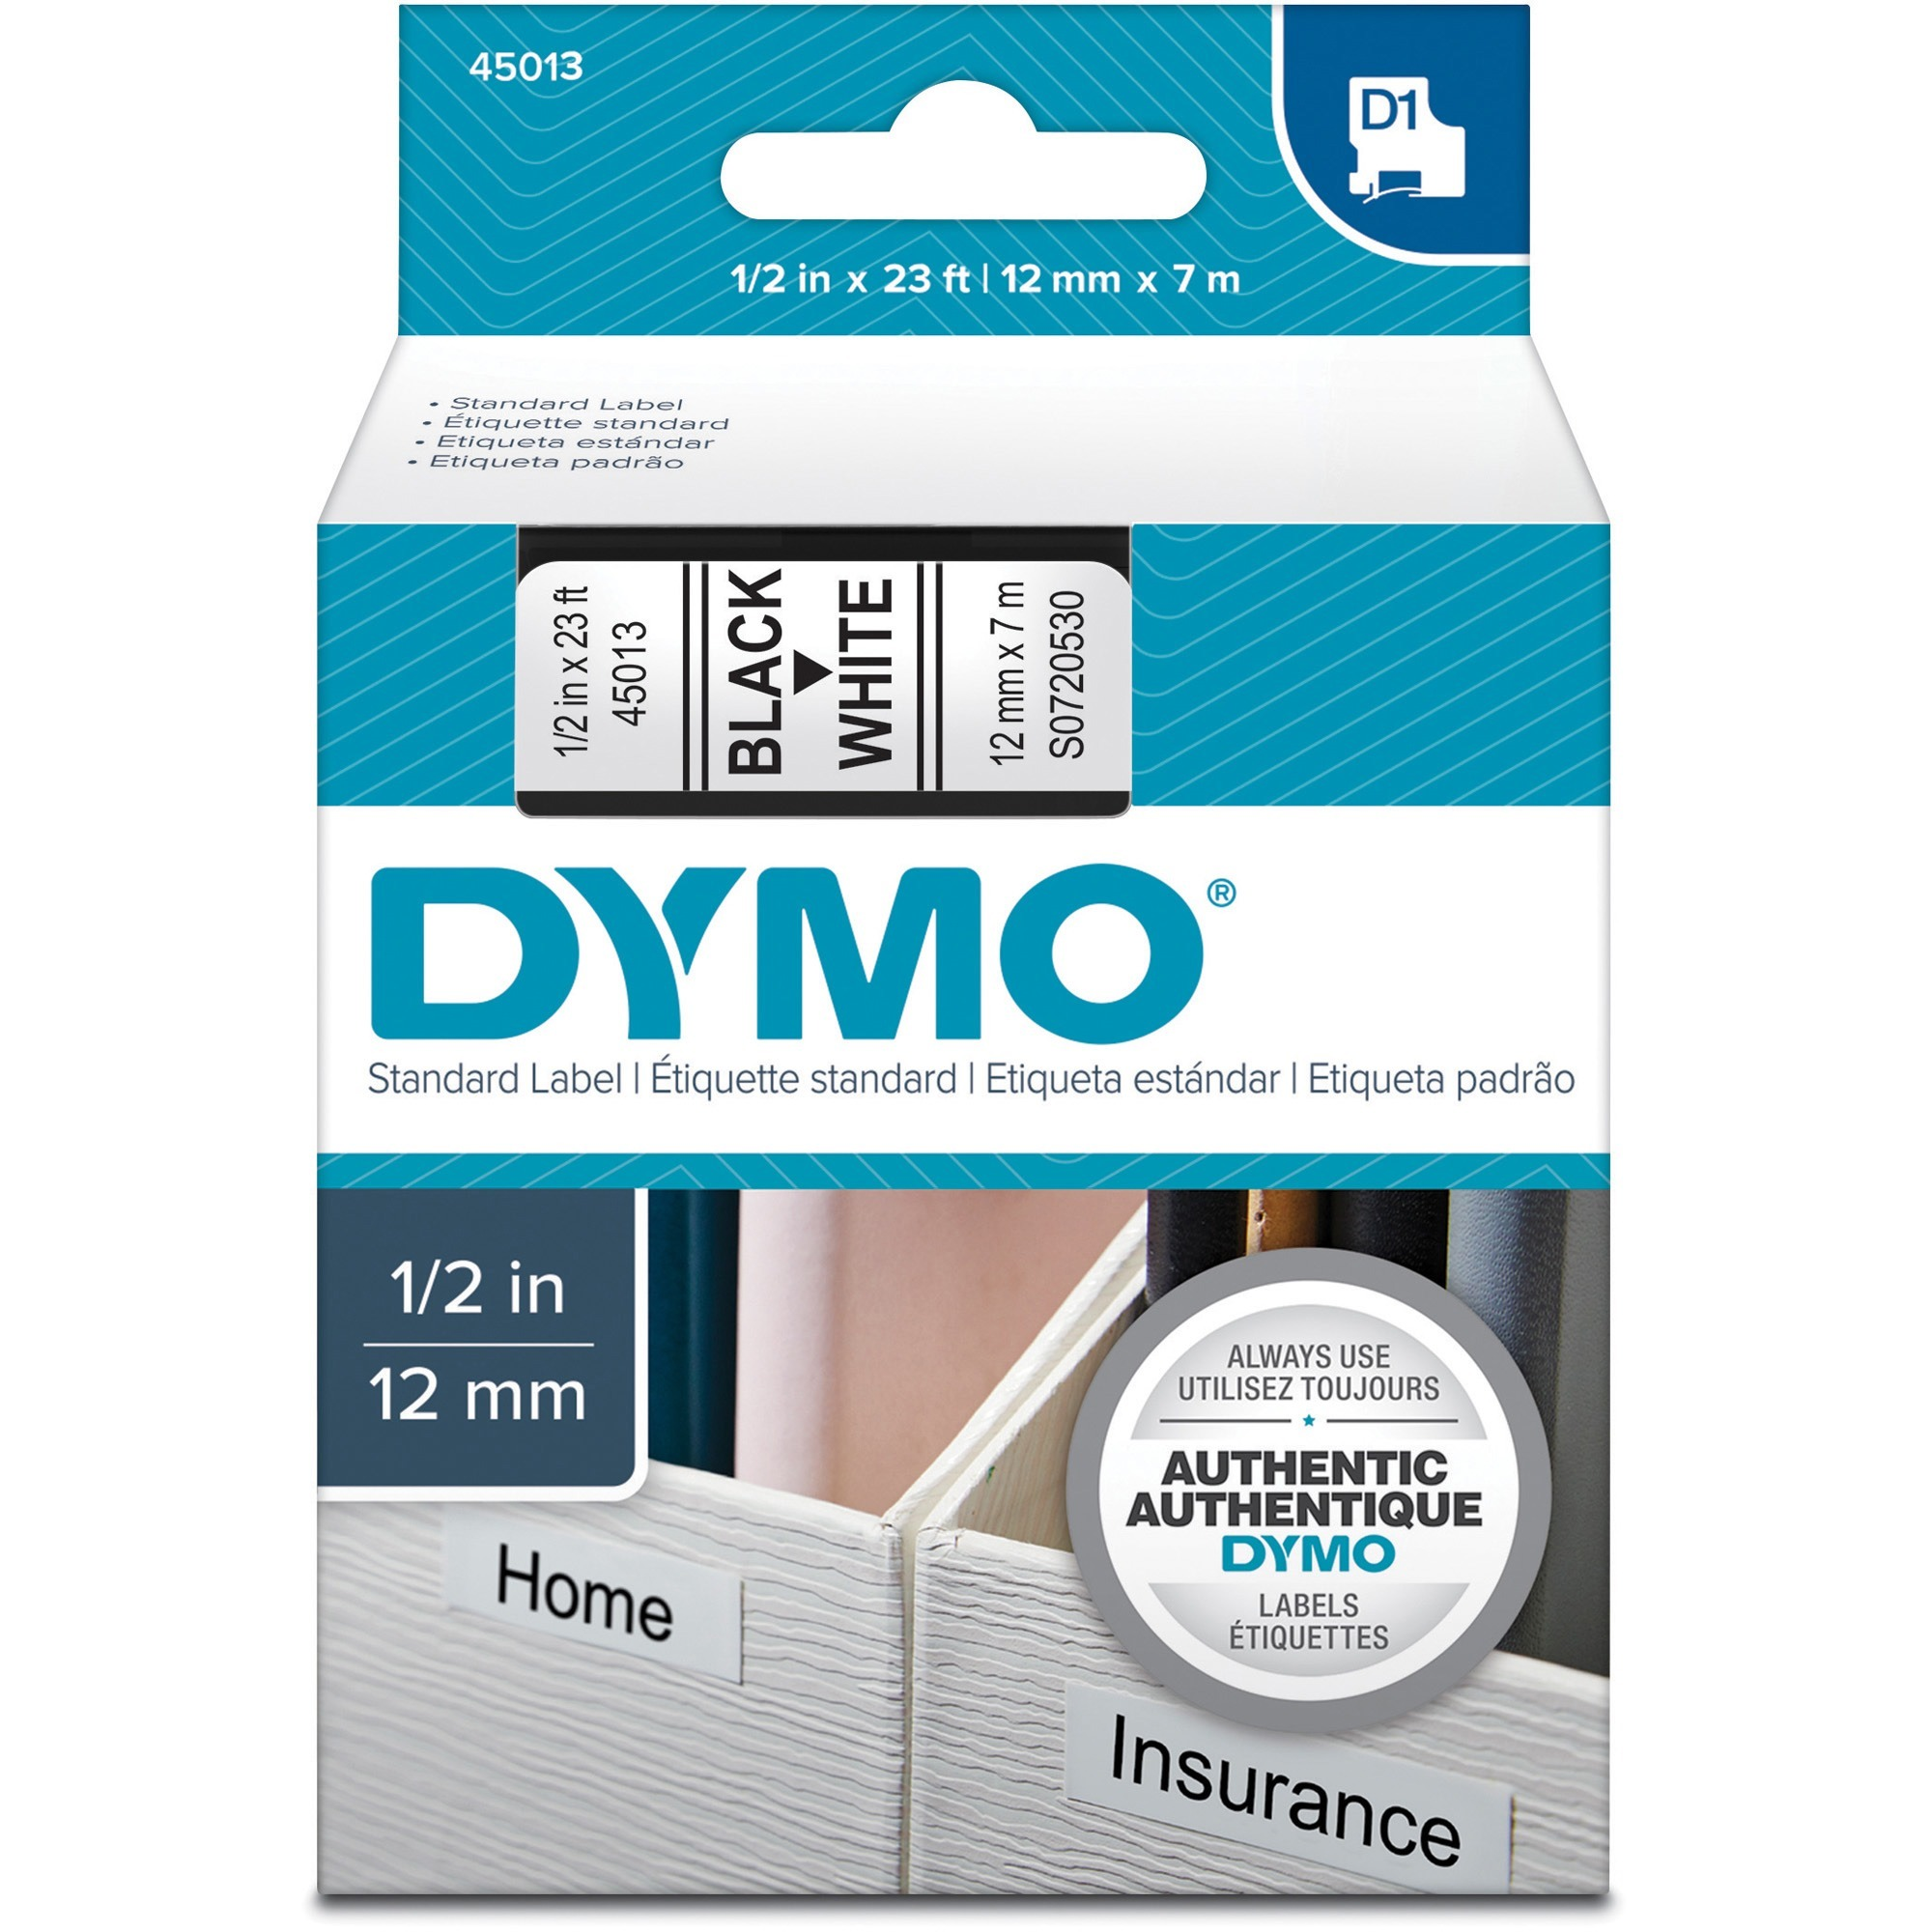 "D1 High-Performance Polyester Removable Label Tape, 1/2"" x 23 ft, Black on White"